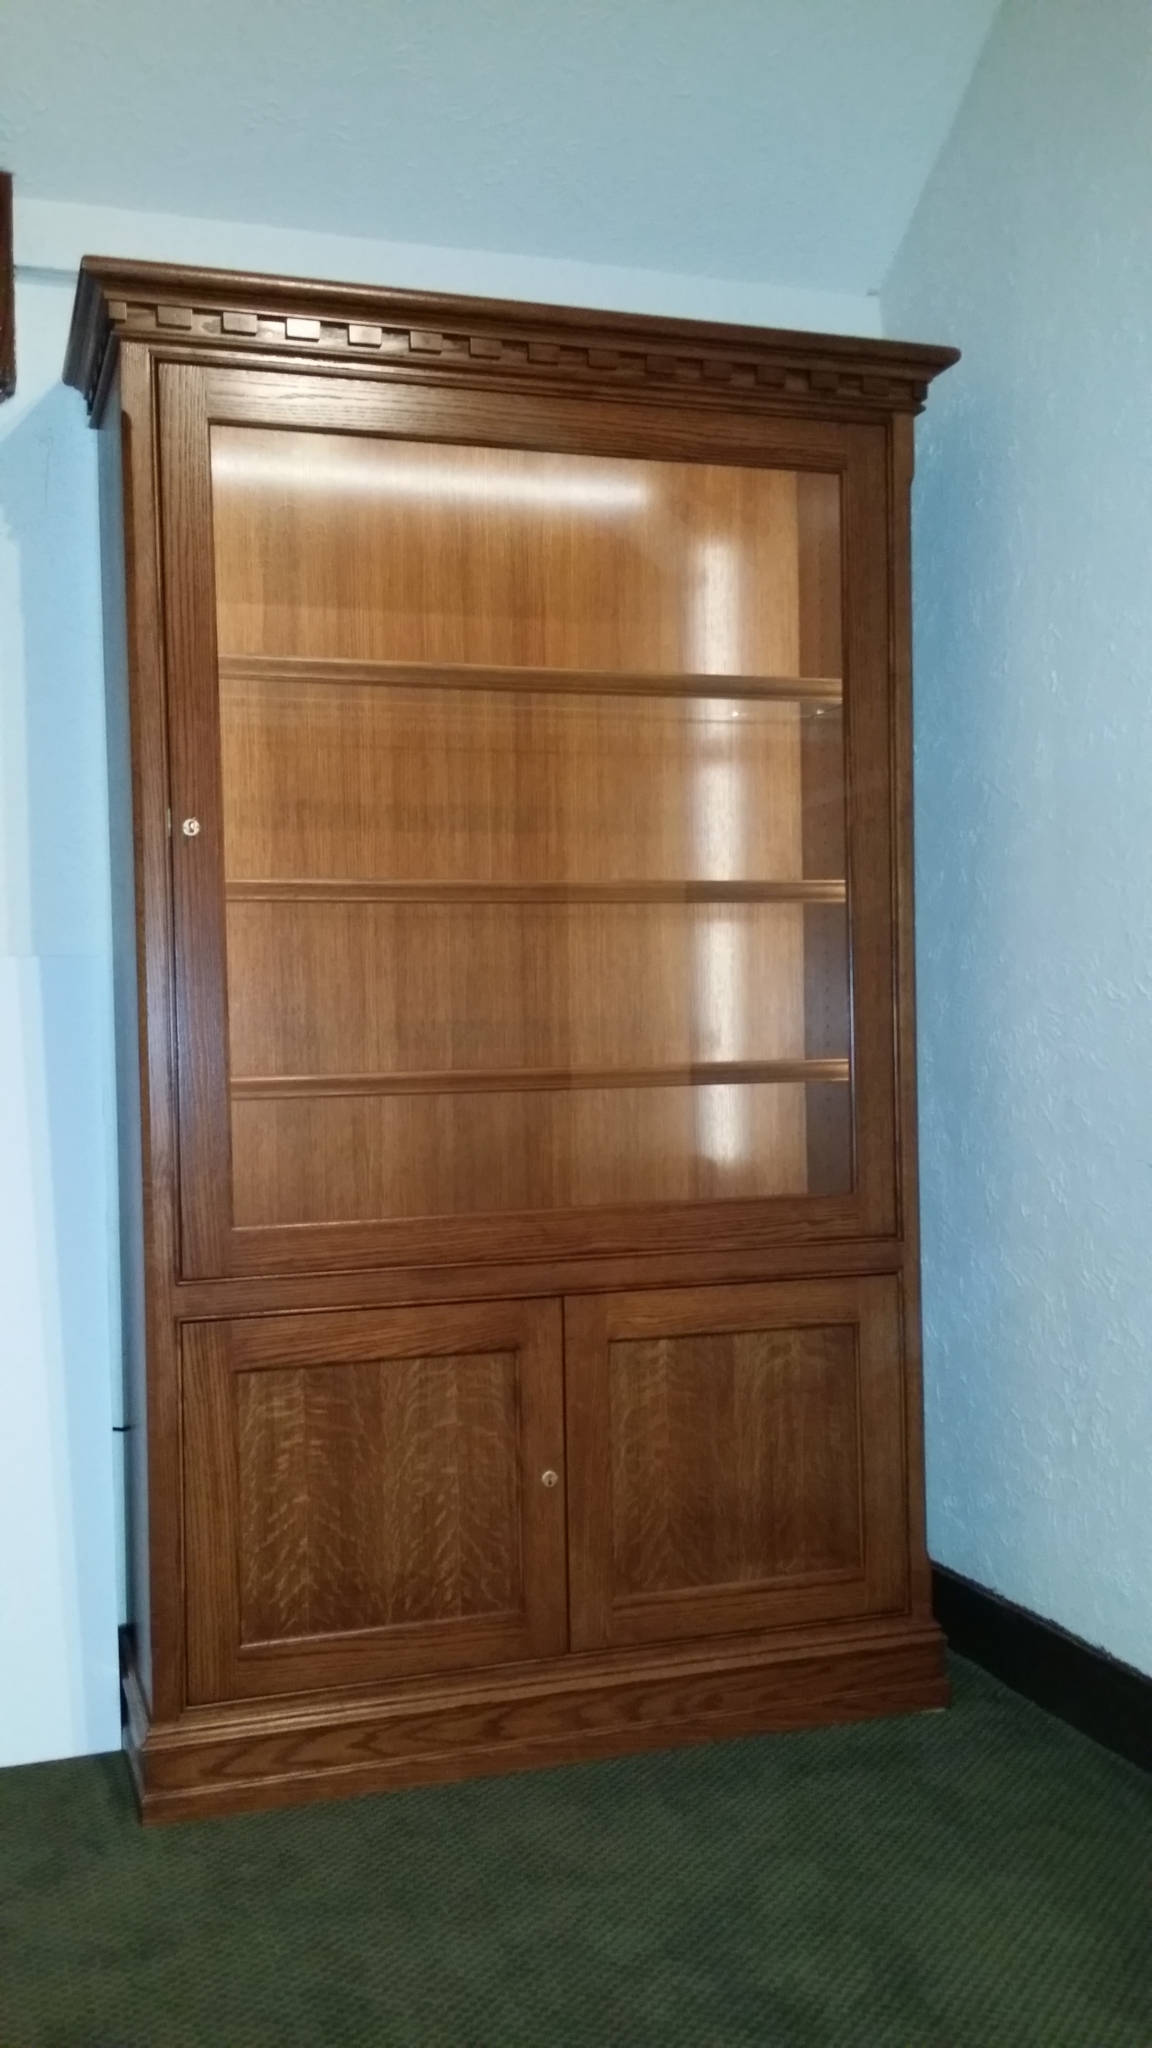 Custom lighted display cabinet for hinsdale golf club hand made custom cabinets hand made - Custom display cabinets ...